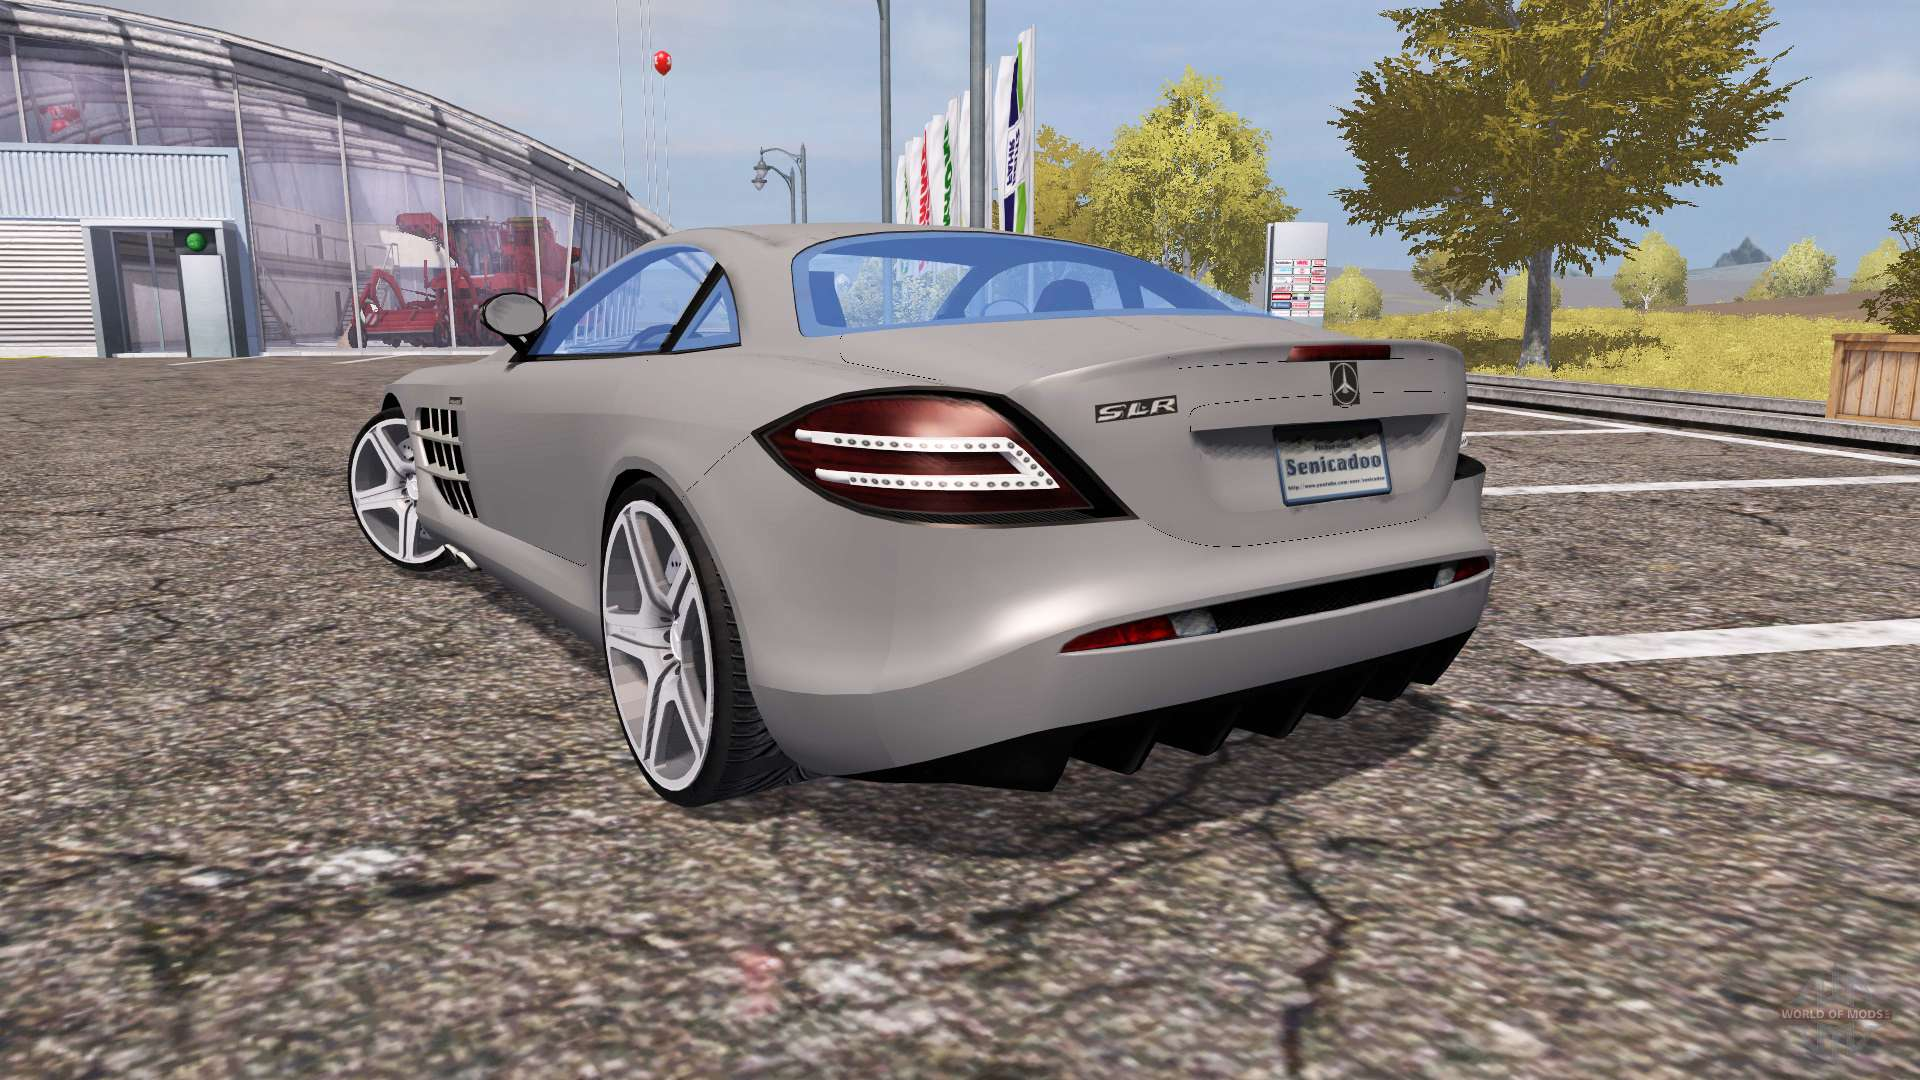 Mercedes benz slr mclaren c199 for farming simulator 2013 for Mercedes benz slr